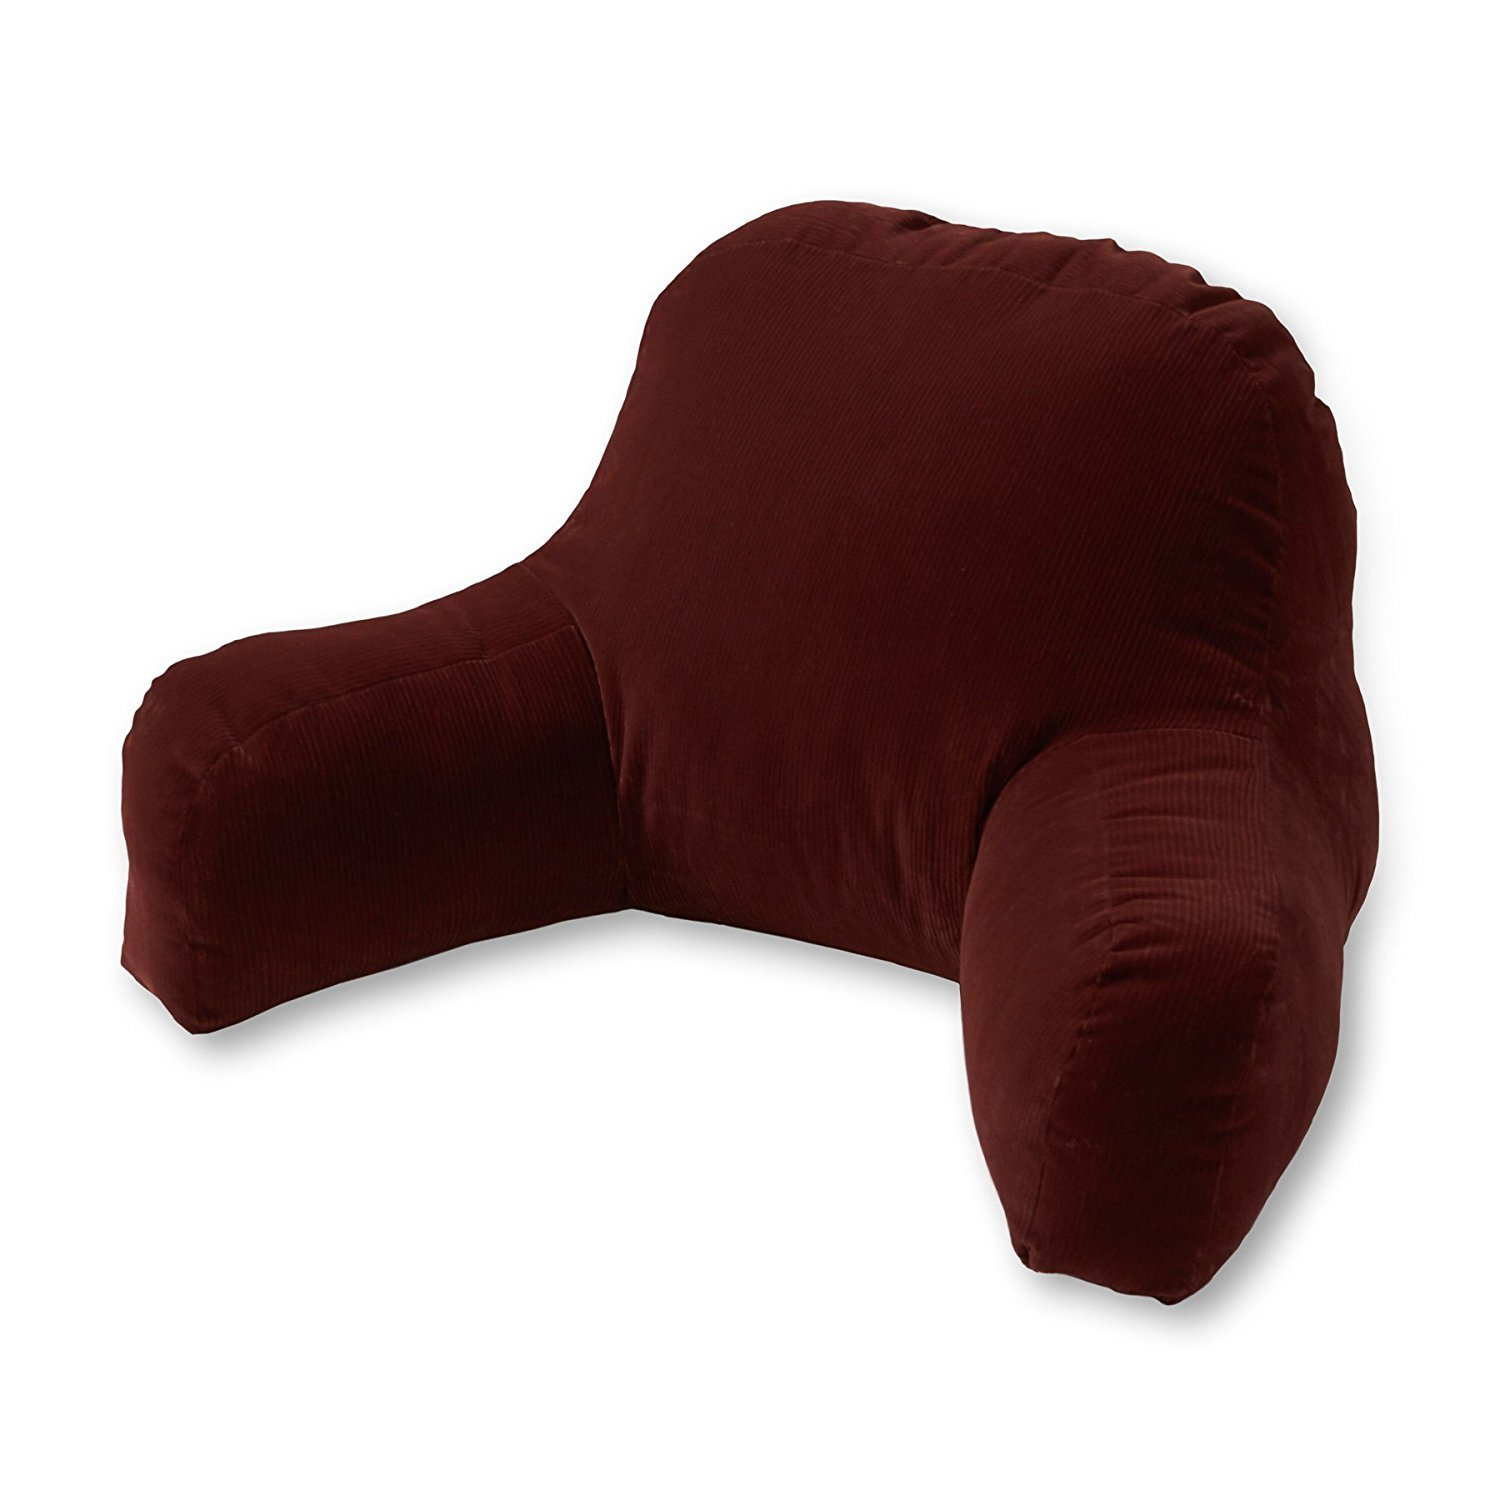 Best Wedge Pillow For Reading In Bed